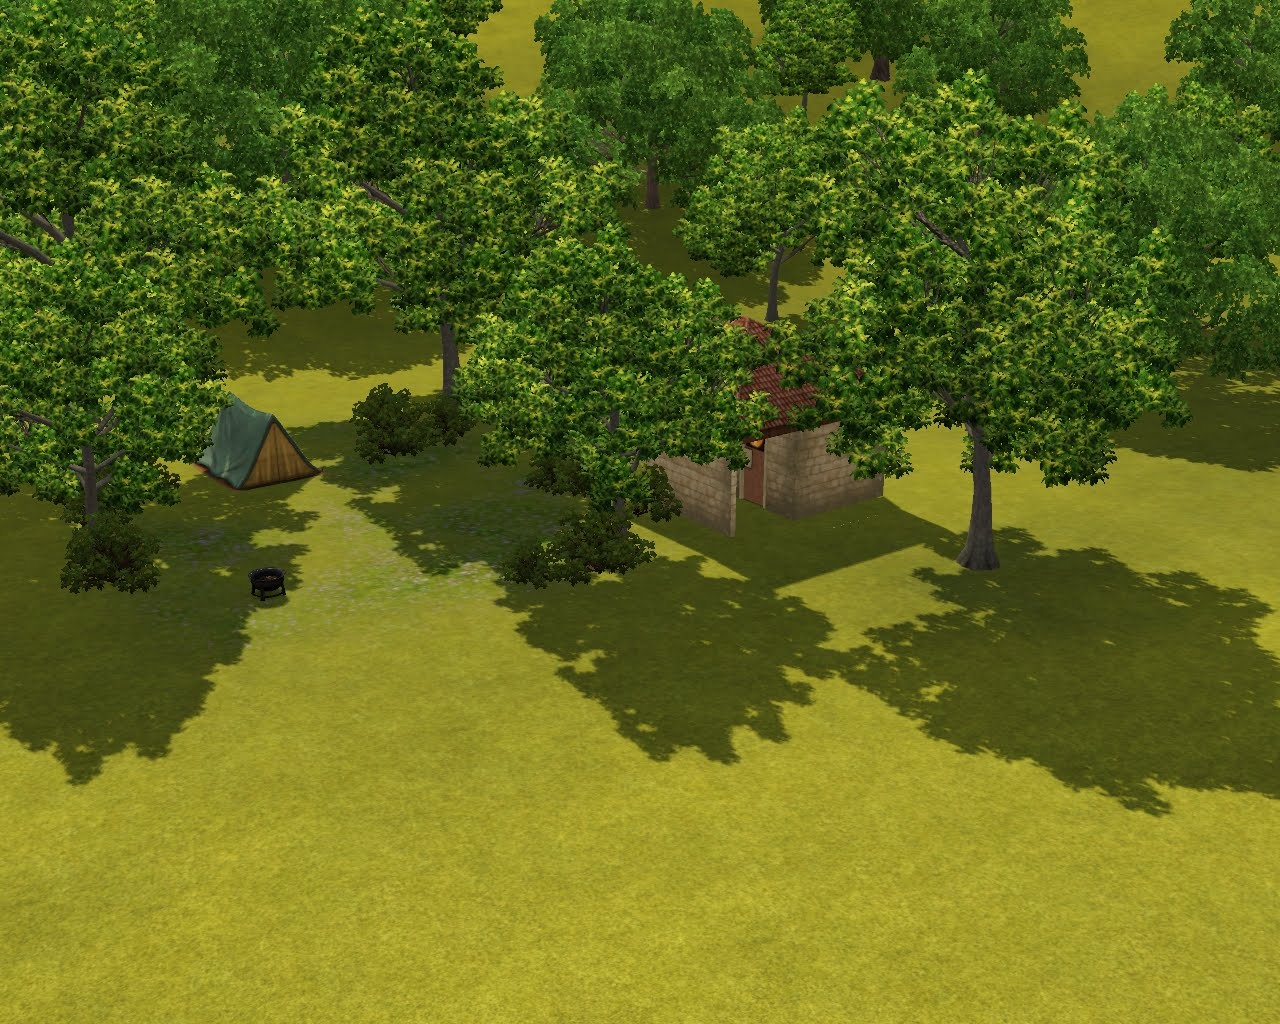 summer 39 s little sims 3 garden champs les sims the sims 3 world adventures list of community lots